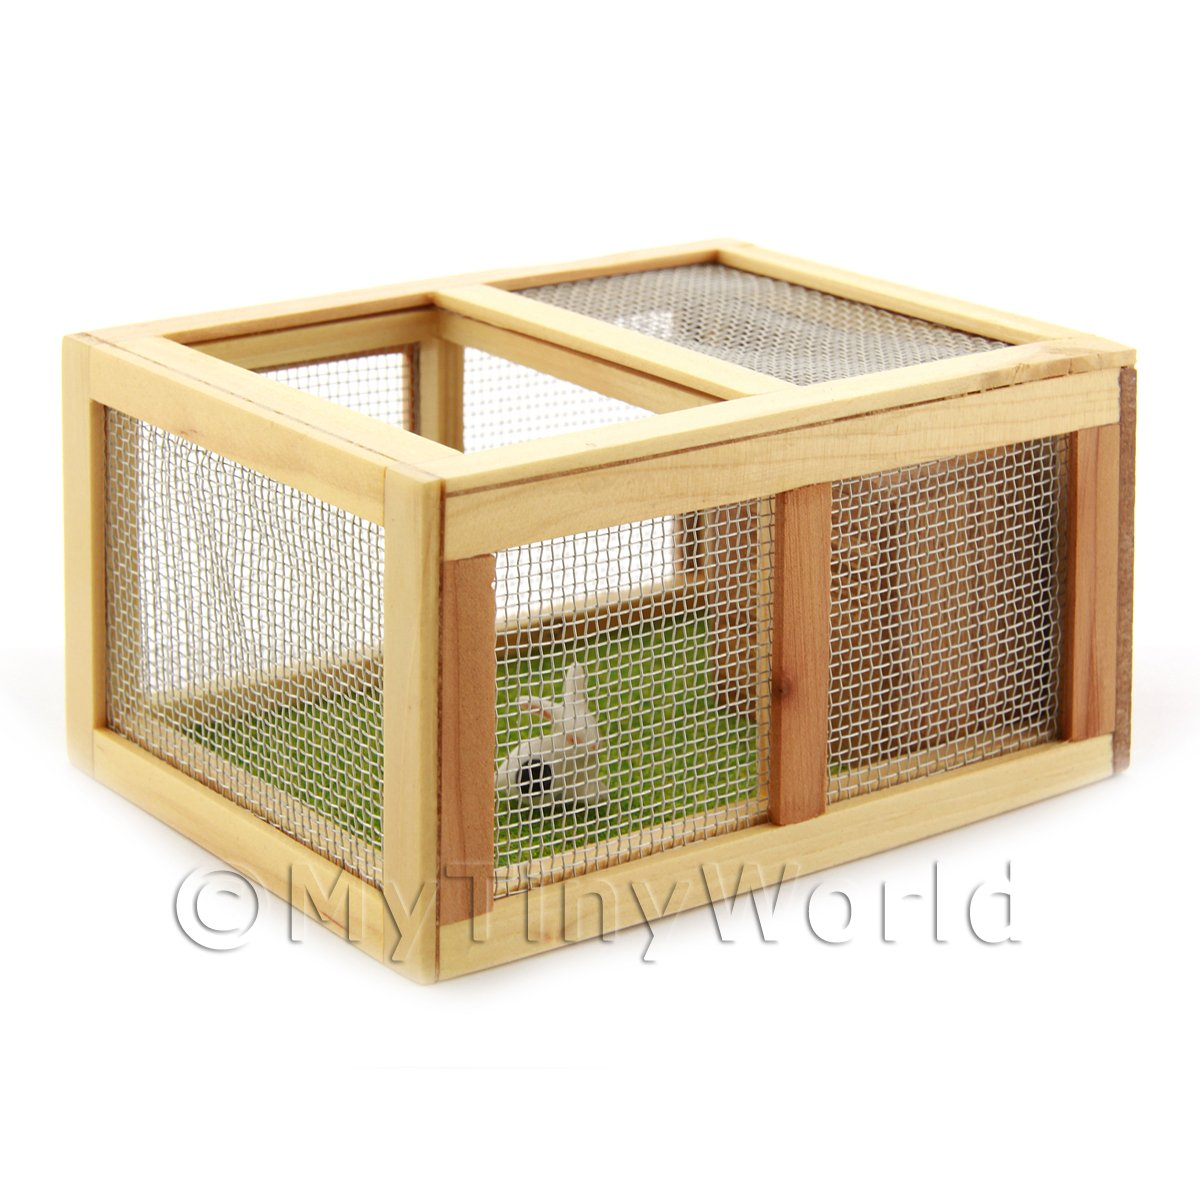 Dolls House Miniature Wooden Guniea Pig / Rabbit Hutch And Rabbit